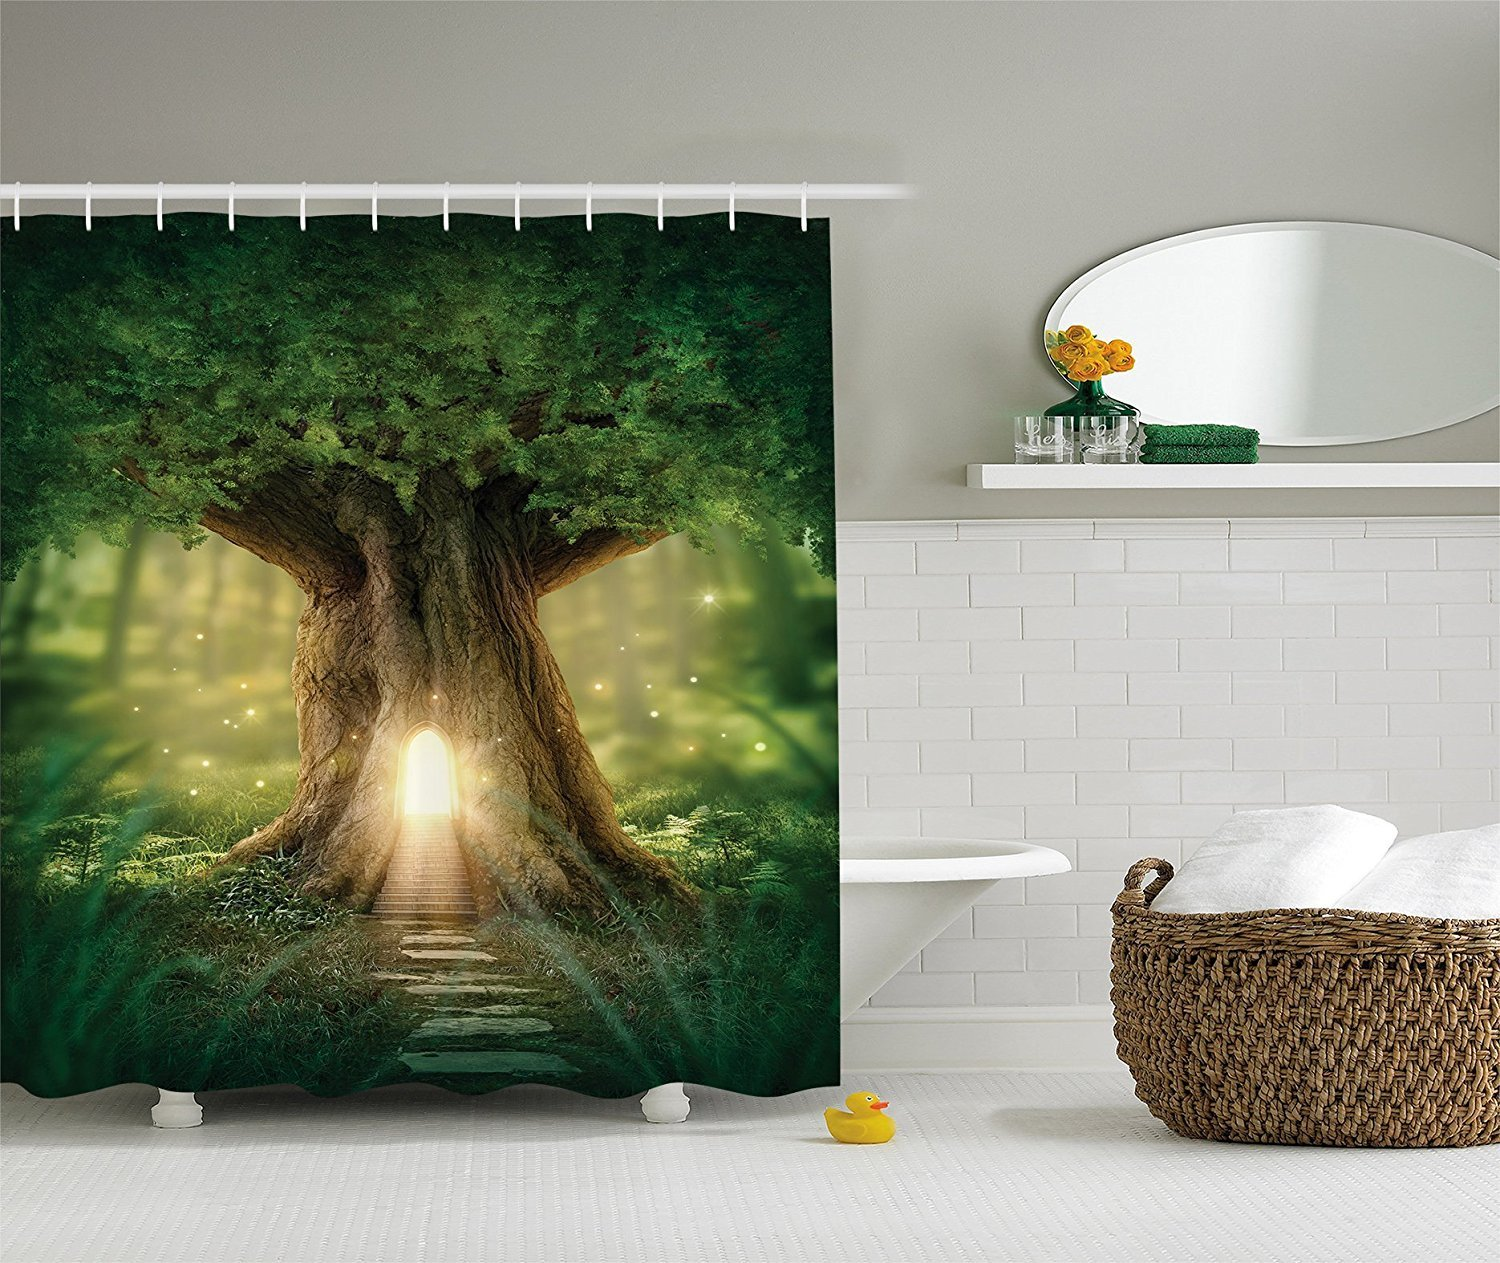 """Tree of Life Shower Curtain Bohemian Yoga Decor, Fairy Tree of Life Light in a Black Rainforest Woodsy Wildlife Scene, Fabric Bathroom Curtain Set with Hooks Brown Green Yellow 72"""" W By 72"""" L"""